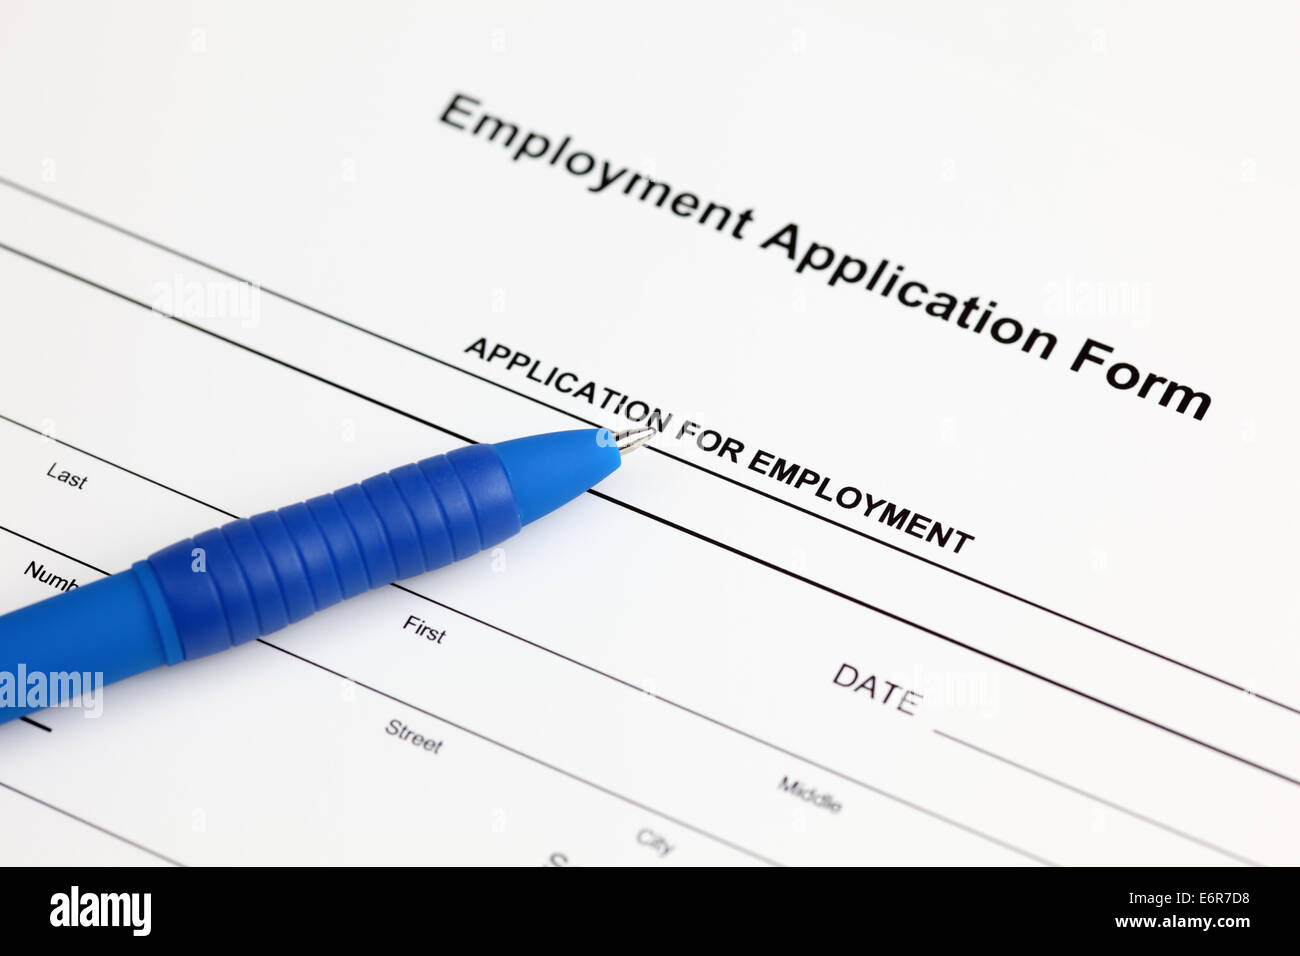 Employment Application Form Stock Photos & Employment Application ...